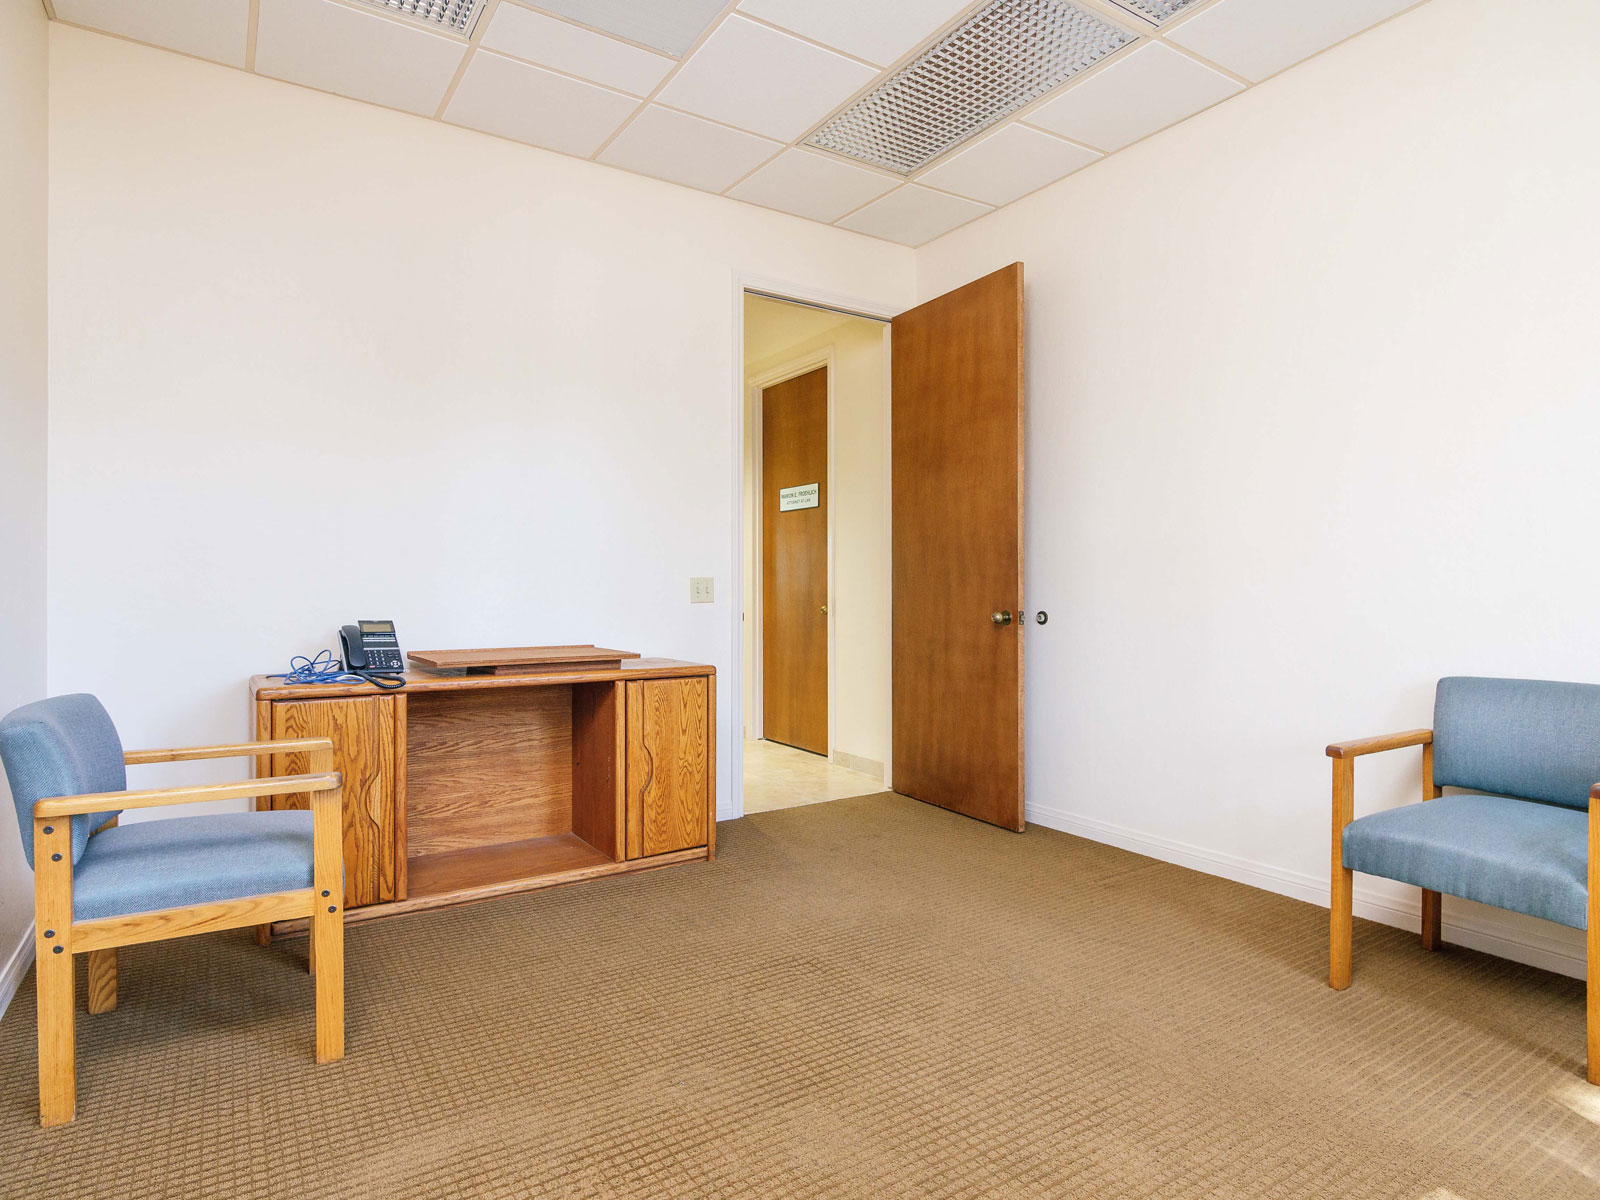 316-s-melrose-vista-ca-executive-office-for-lease-104